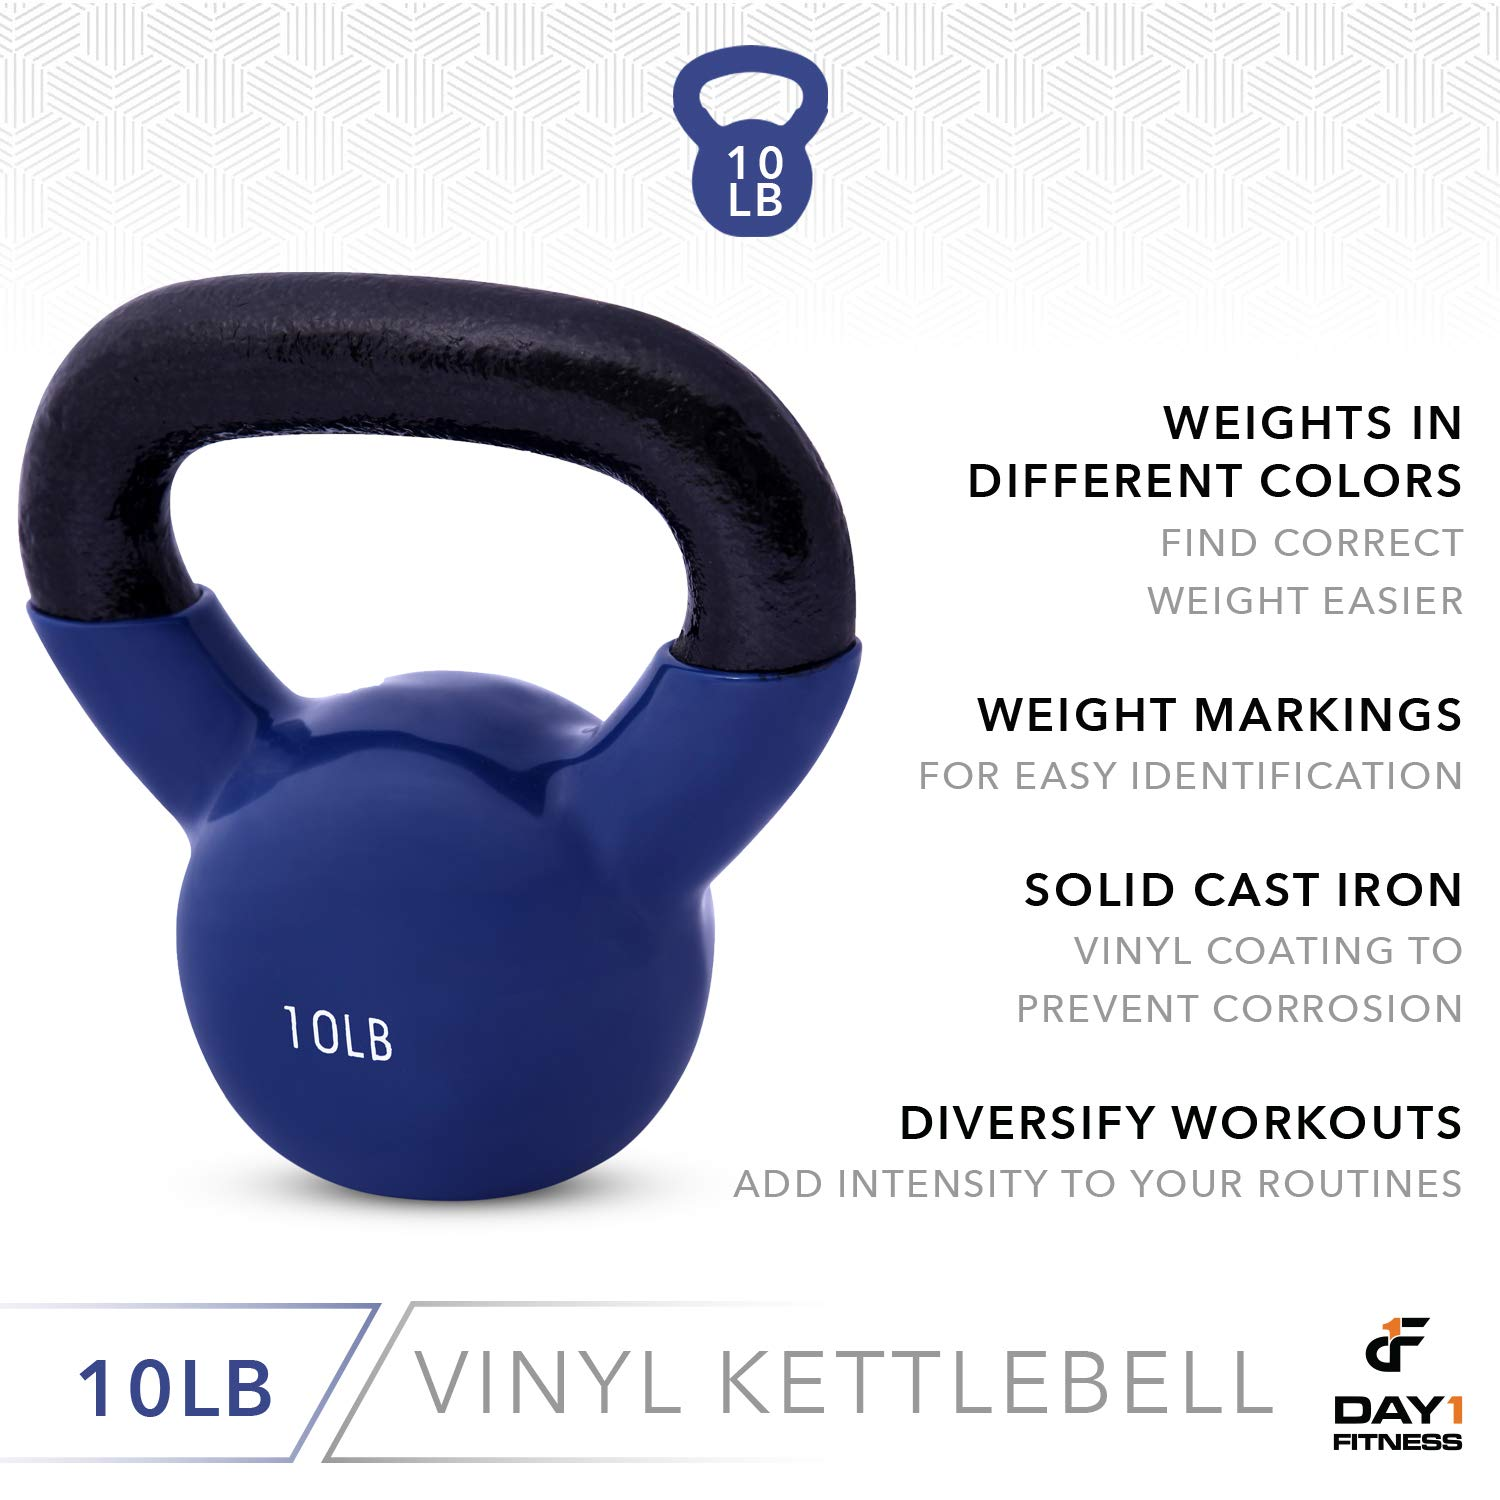 Day 1 Fitness Kettlebell Weights Vinyl Coated Iron 10 Pounds - Coated for Floor and Equipment Protection, Noise Reduction - Free Weights for Ballistic, Core, Weight Training by Day 1 Fitness (Image #5)